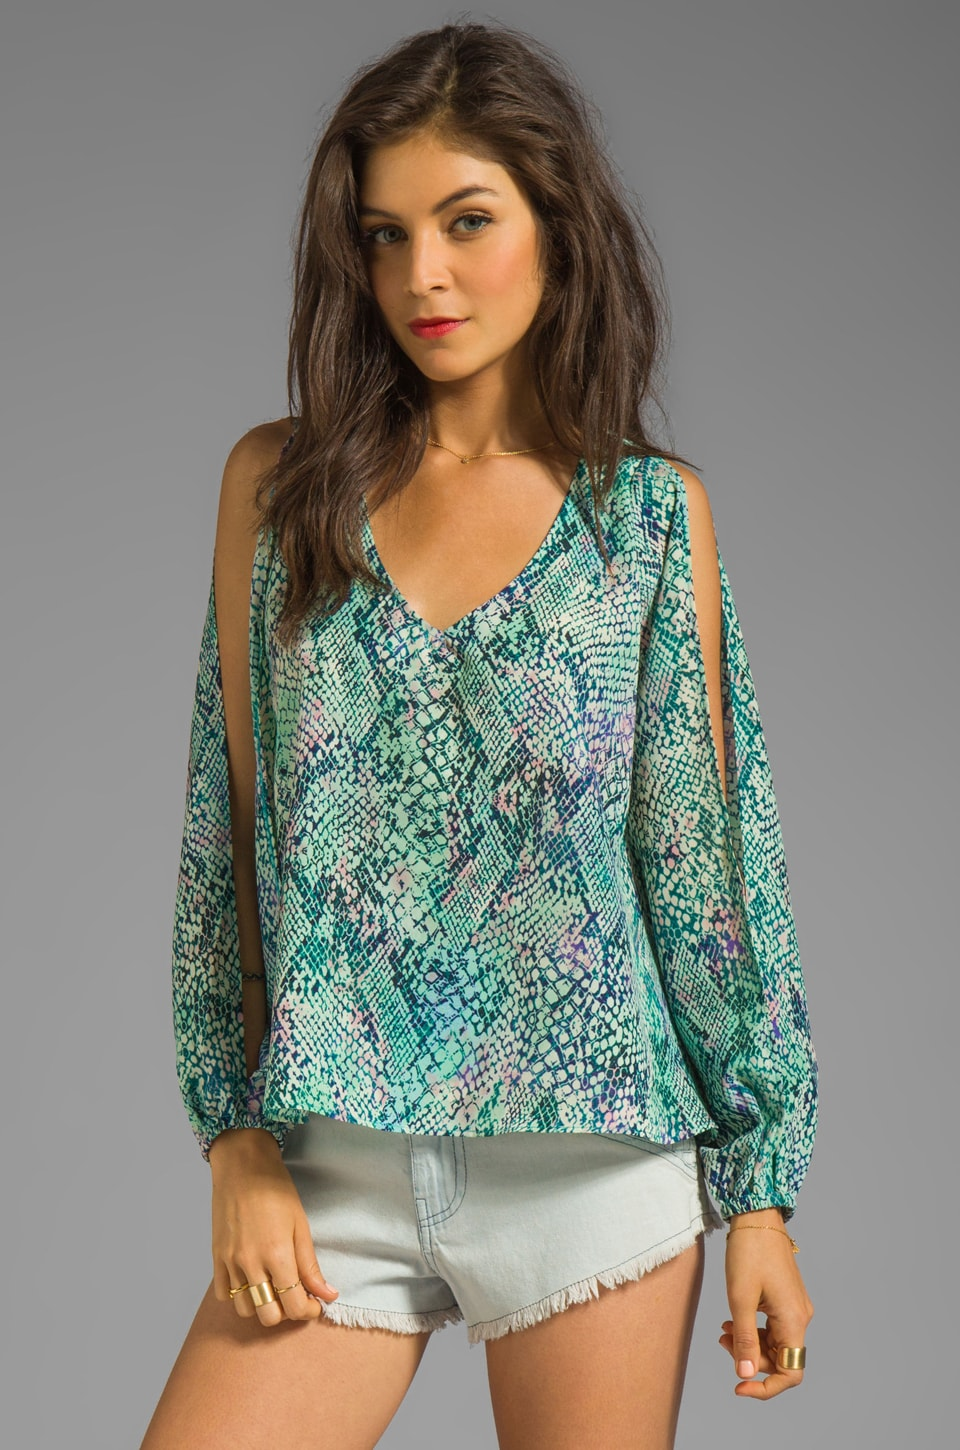 Lovers + Friends Daydream Blouse in Snakeskin